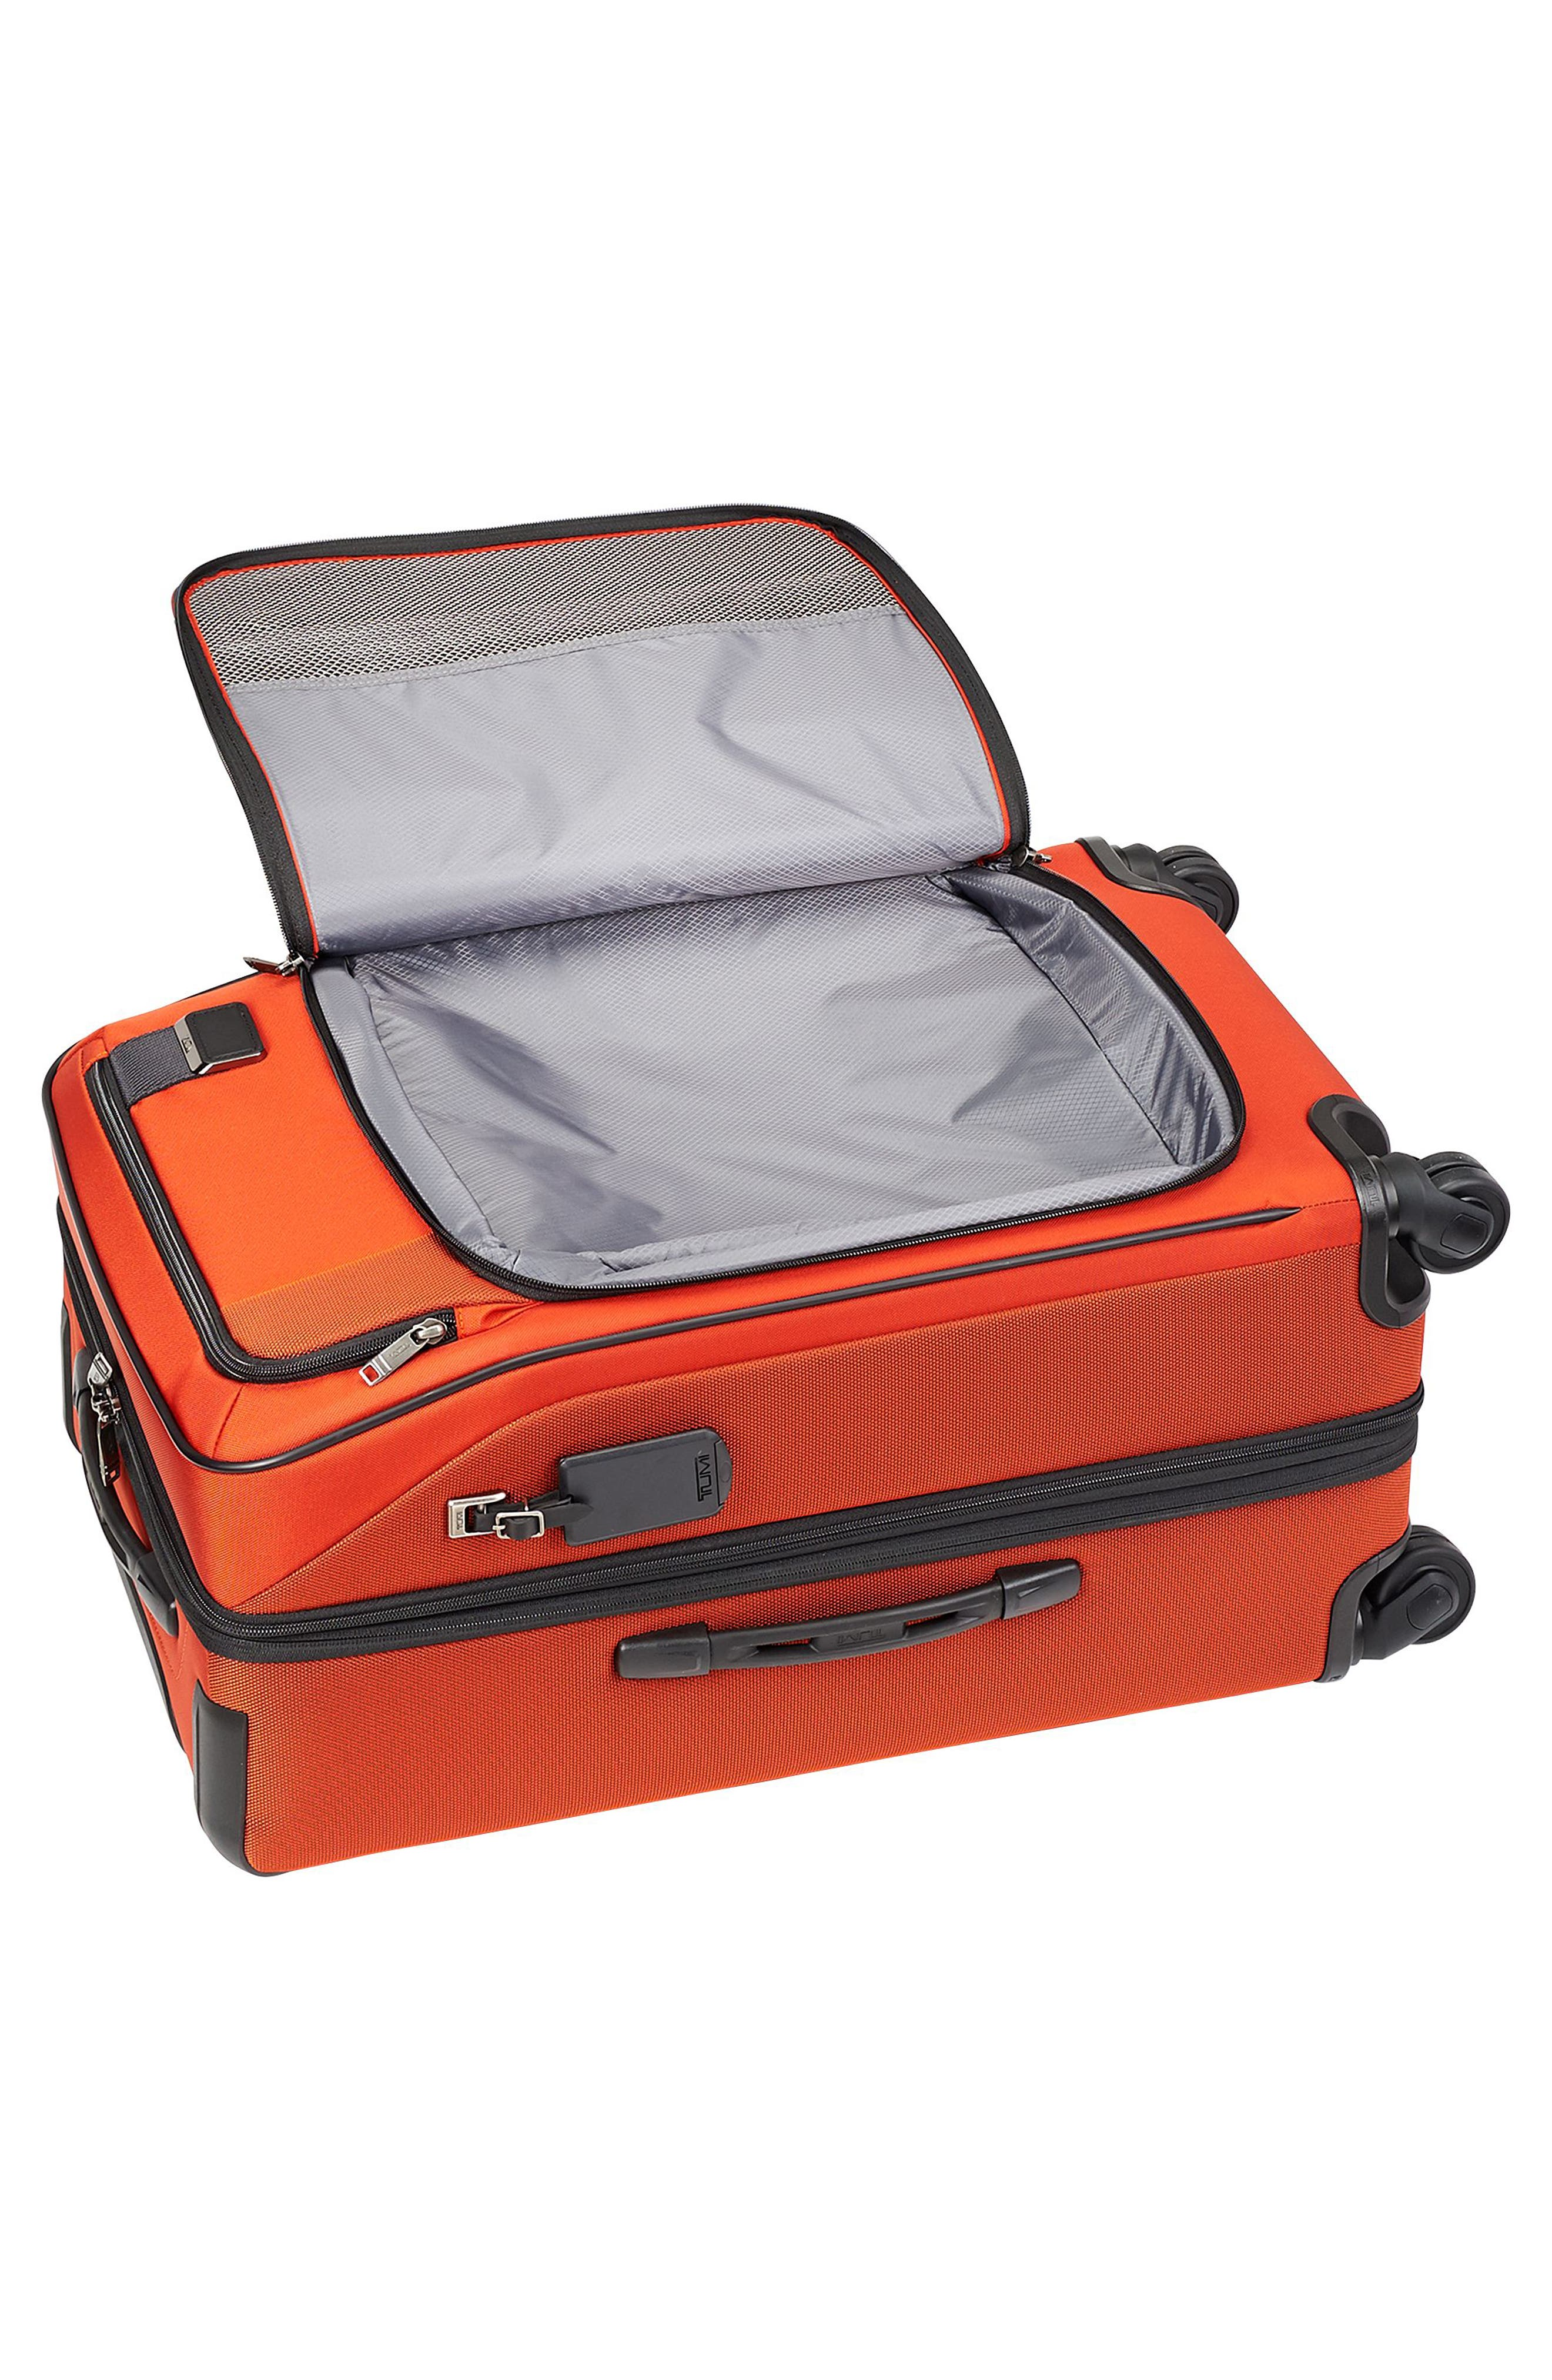 Merge - Short Trip Expandable Rolling Suitcase,                             Alternate thumbnail 5, color,                             SUNSET RED